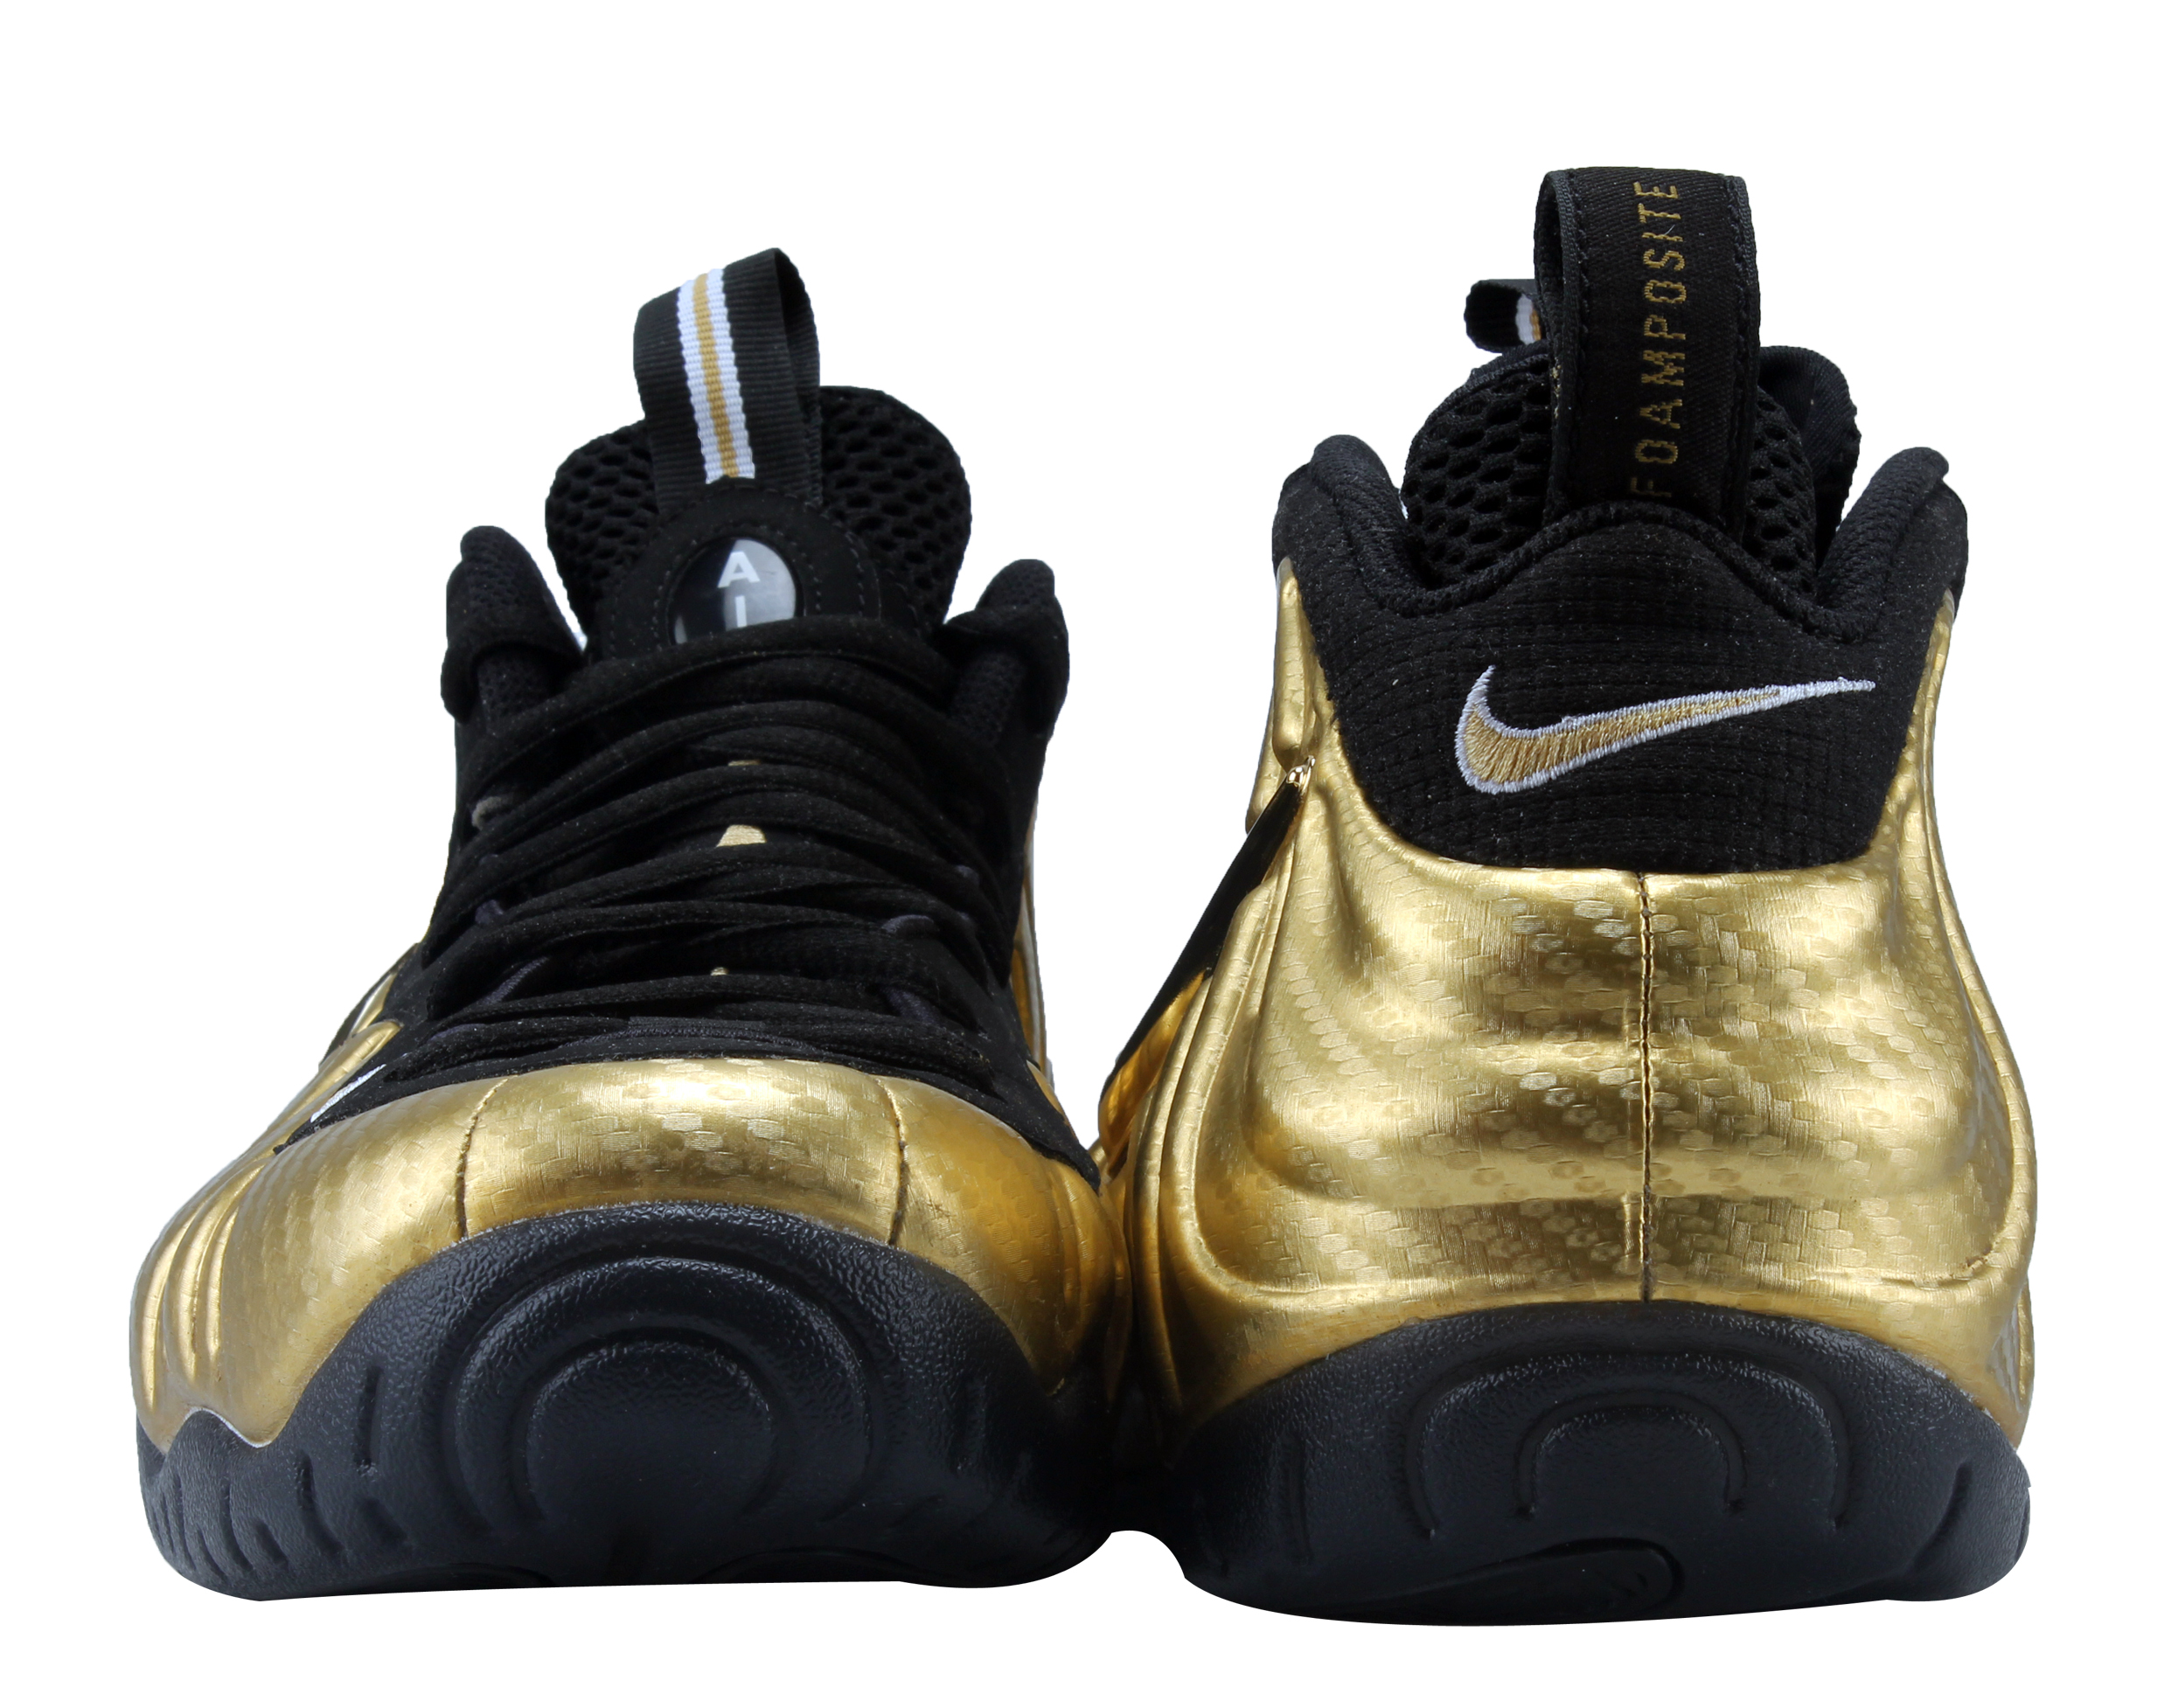 d96772ebe4f1a ... posite one qs gs fruity pebbles basketball shoes 846077 001 basketball  5fae8 7158d  discount store mens nike air foamposite pro metallic gold black  ...